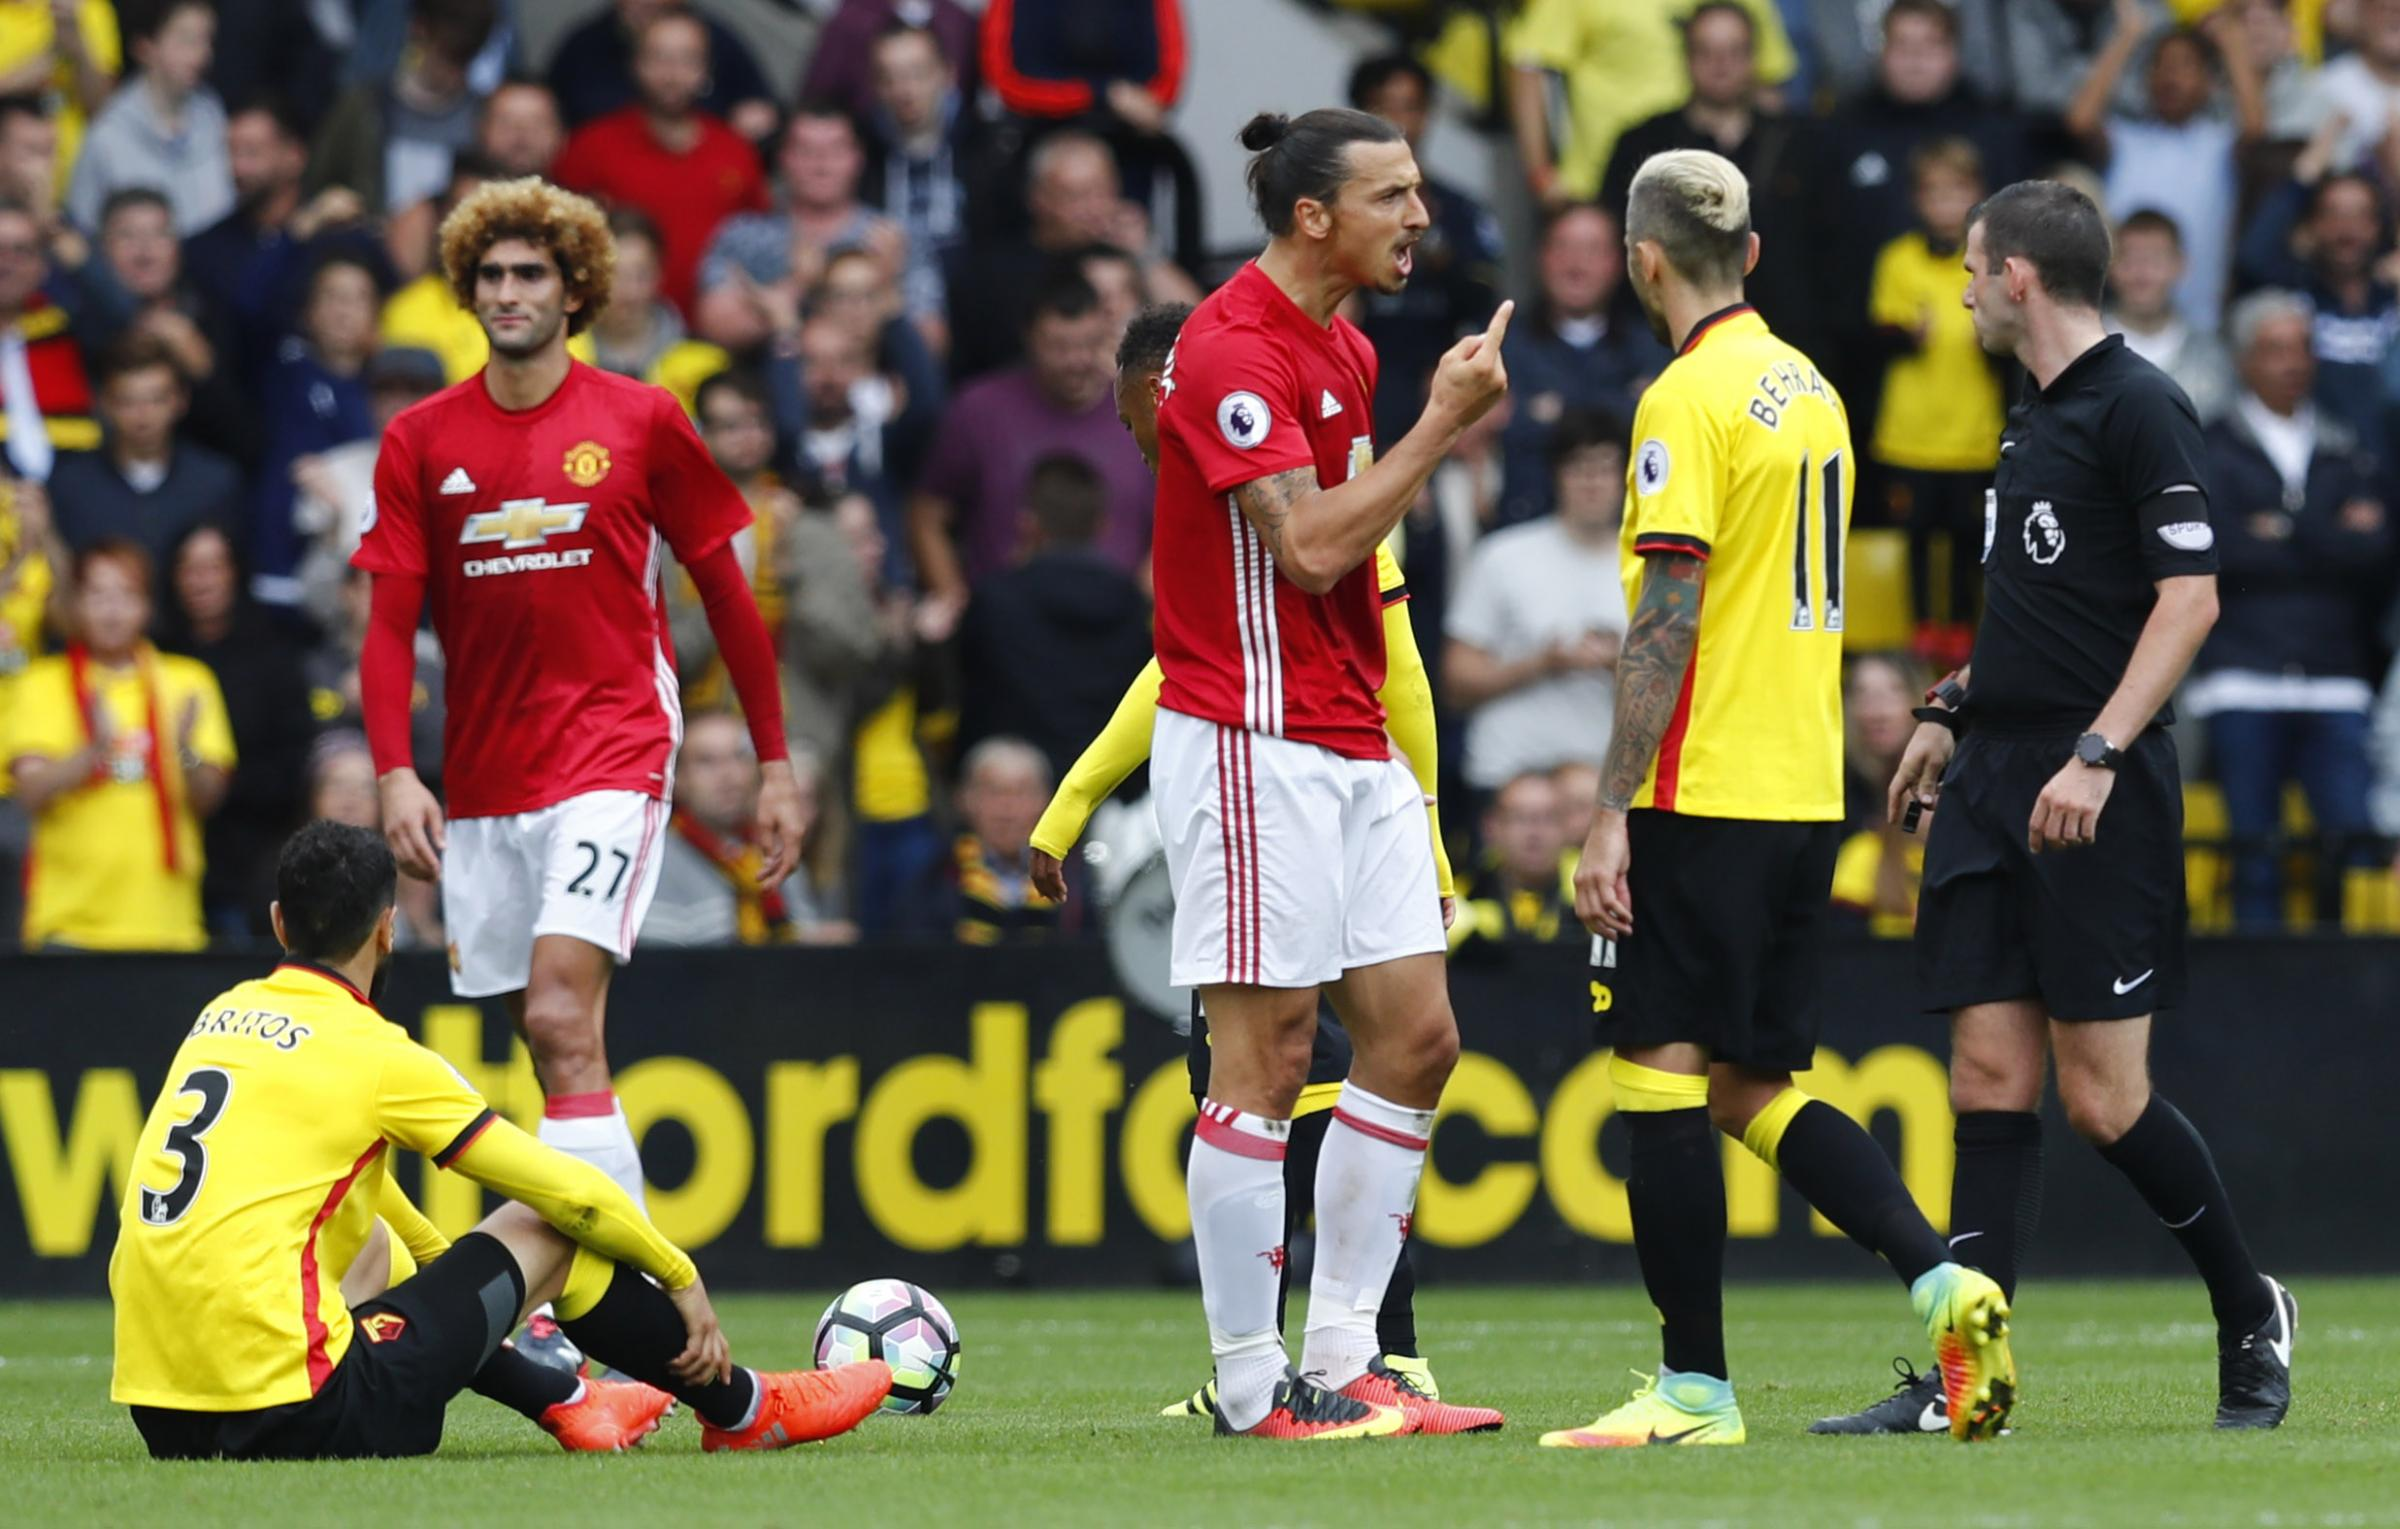 Mourinho blames refereeing decisions, defensive mistakes for loss to Watford